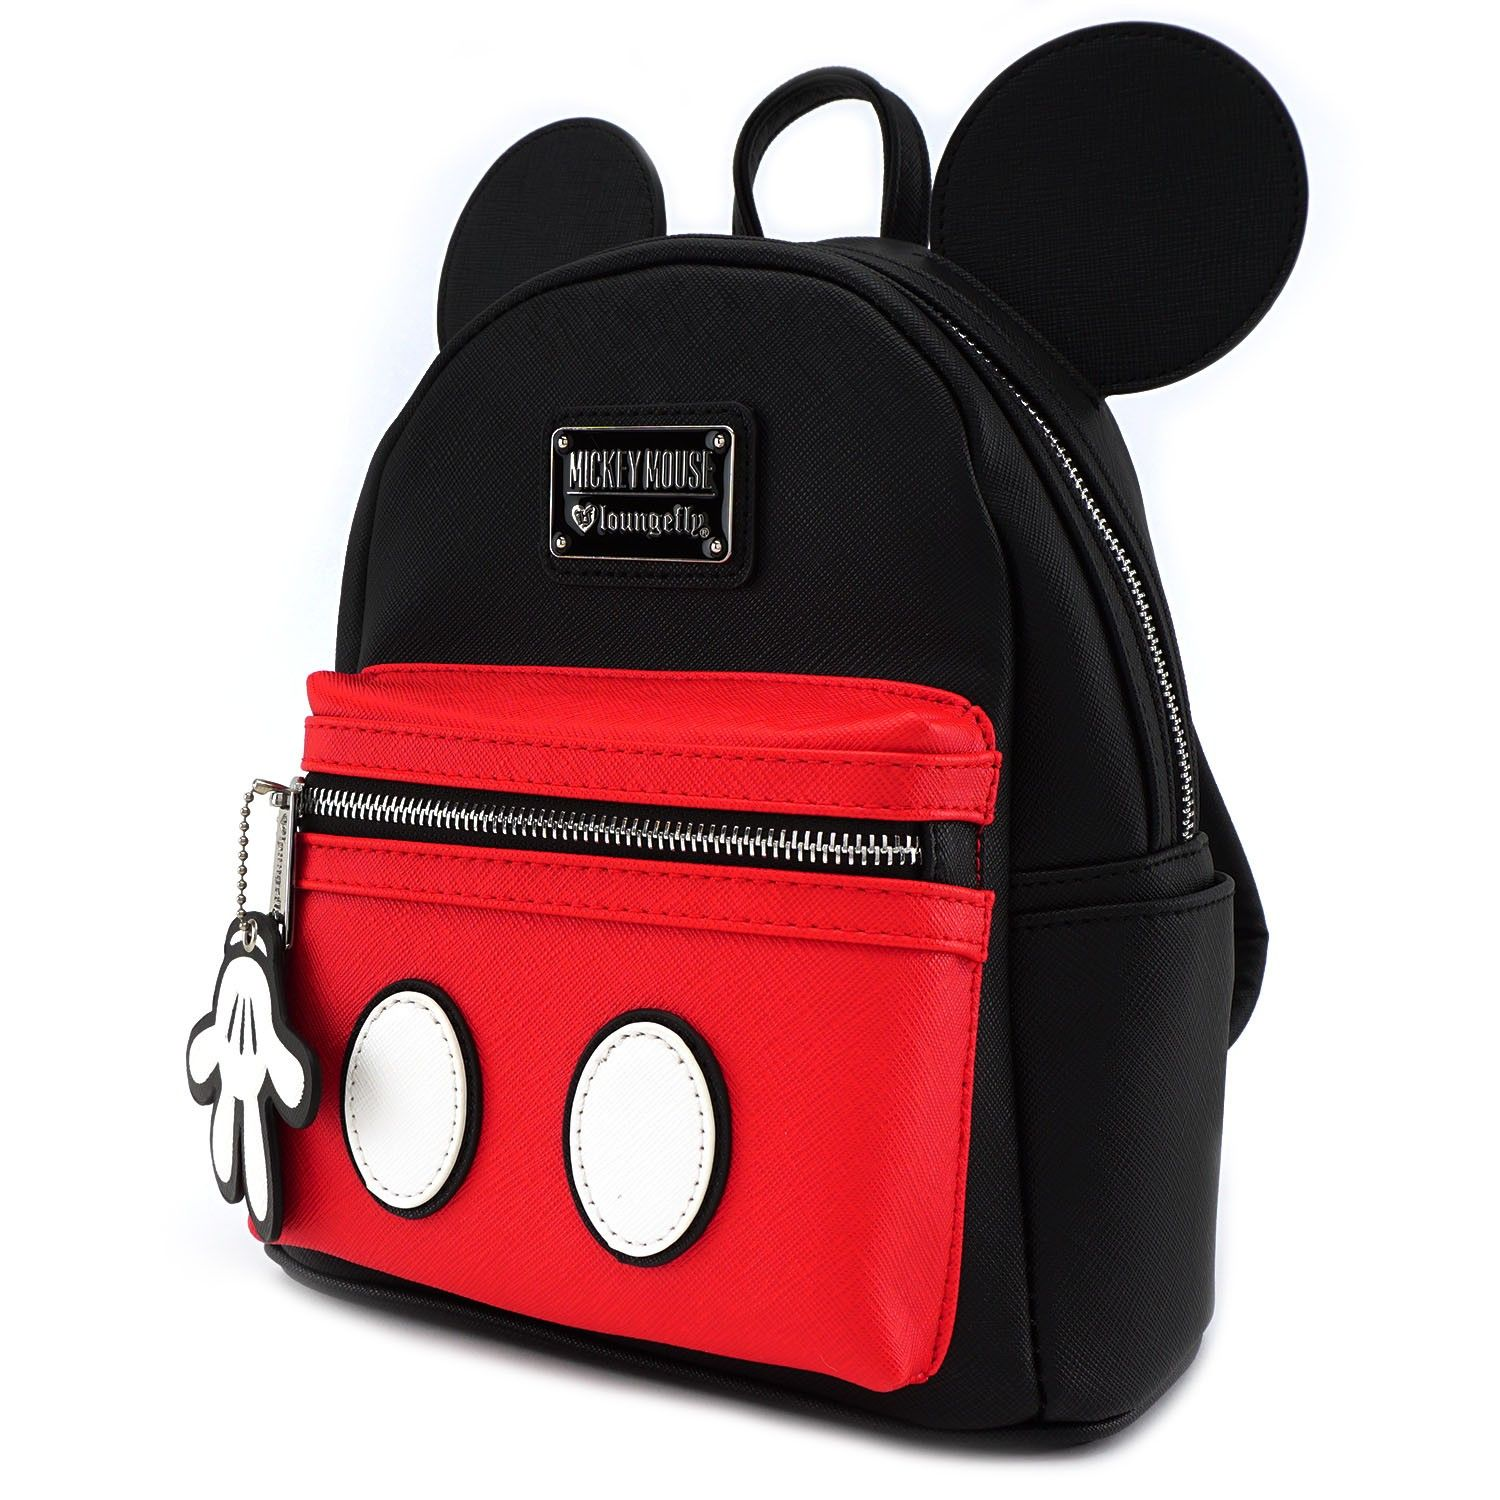 8c5b98c97cd Loungefly x Mickey Suit Mini Saffiano Faux Leather Backpack - Disney -  Brands